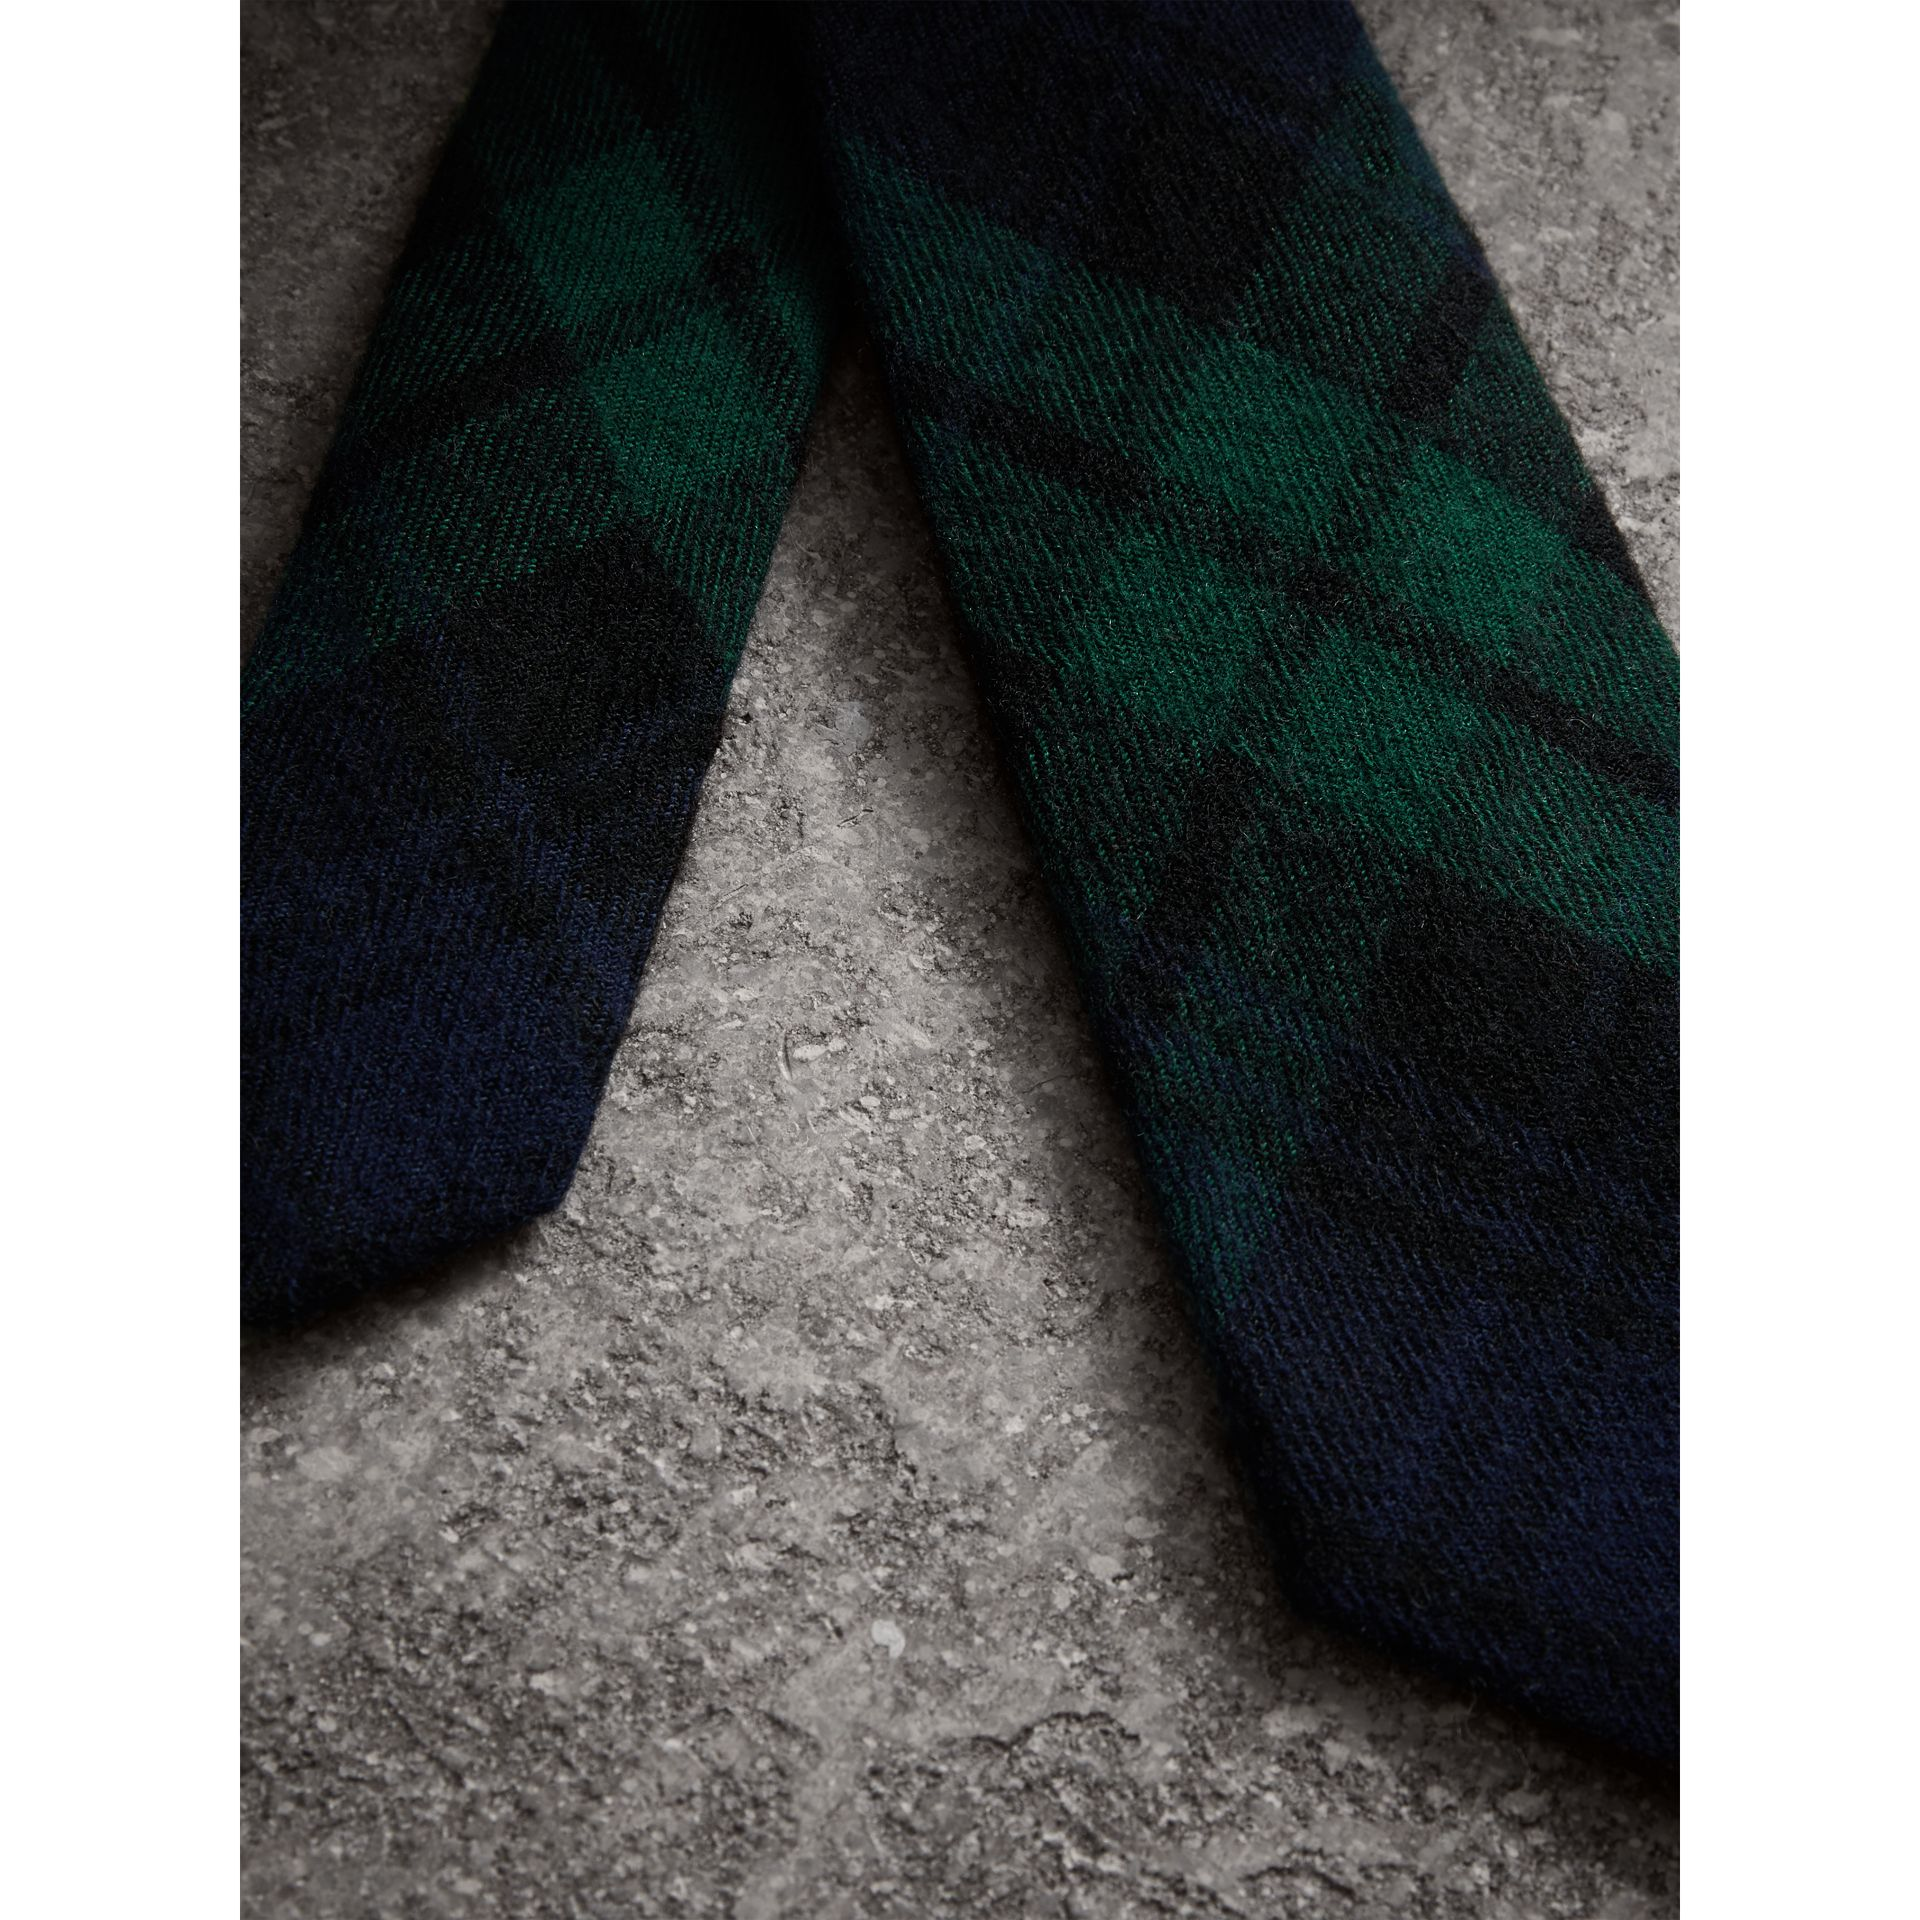 Slim Cut Tartan Wool Flannel Tie in Navy - Men | Burberry - gallery image 1